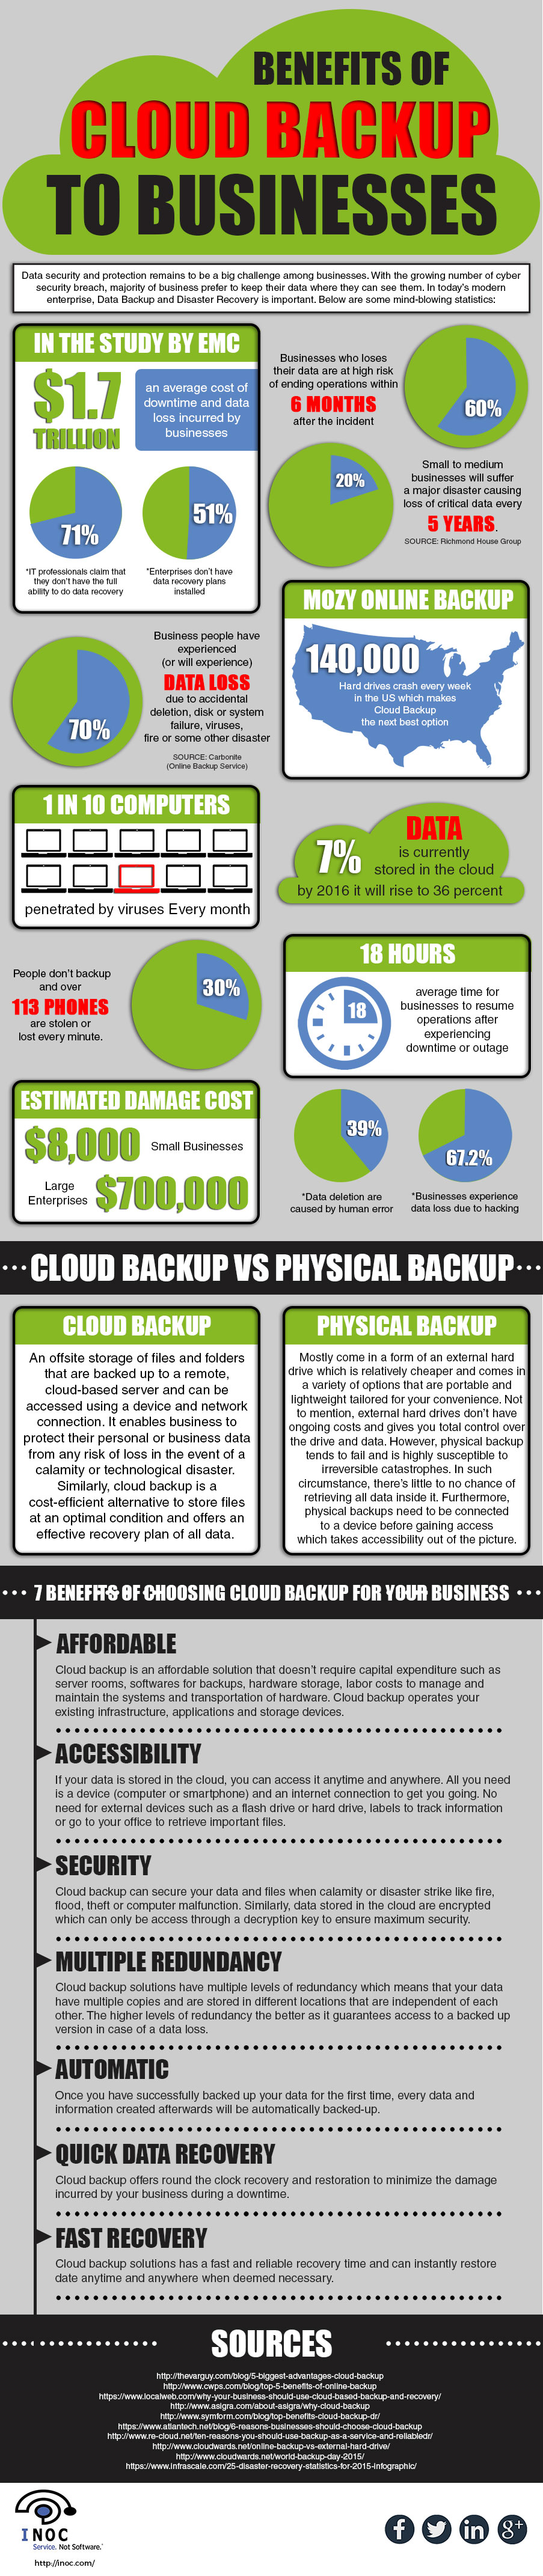 Benefits of Cloud Backup to Businesses infographic